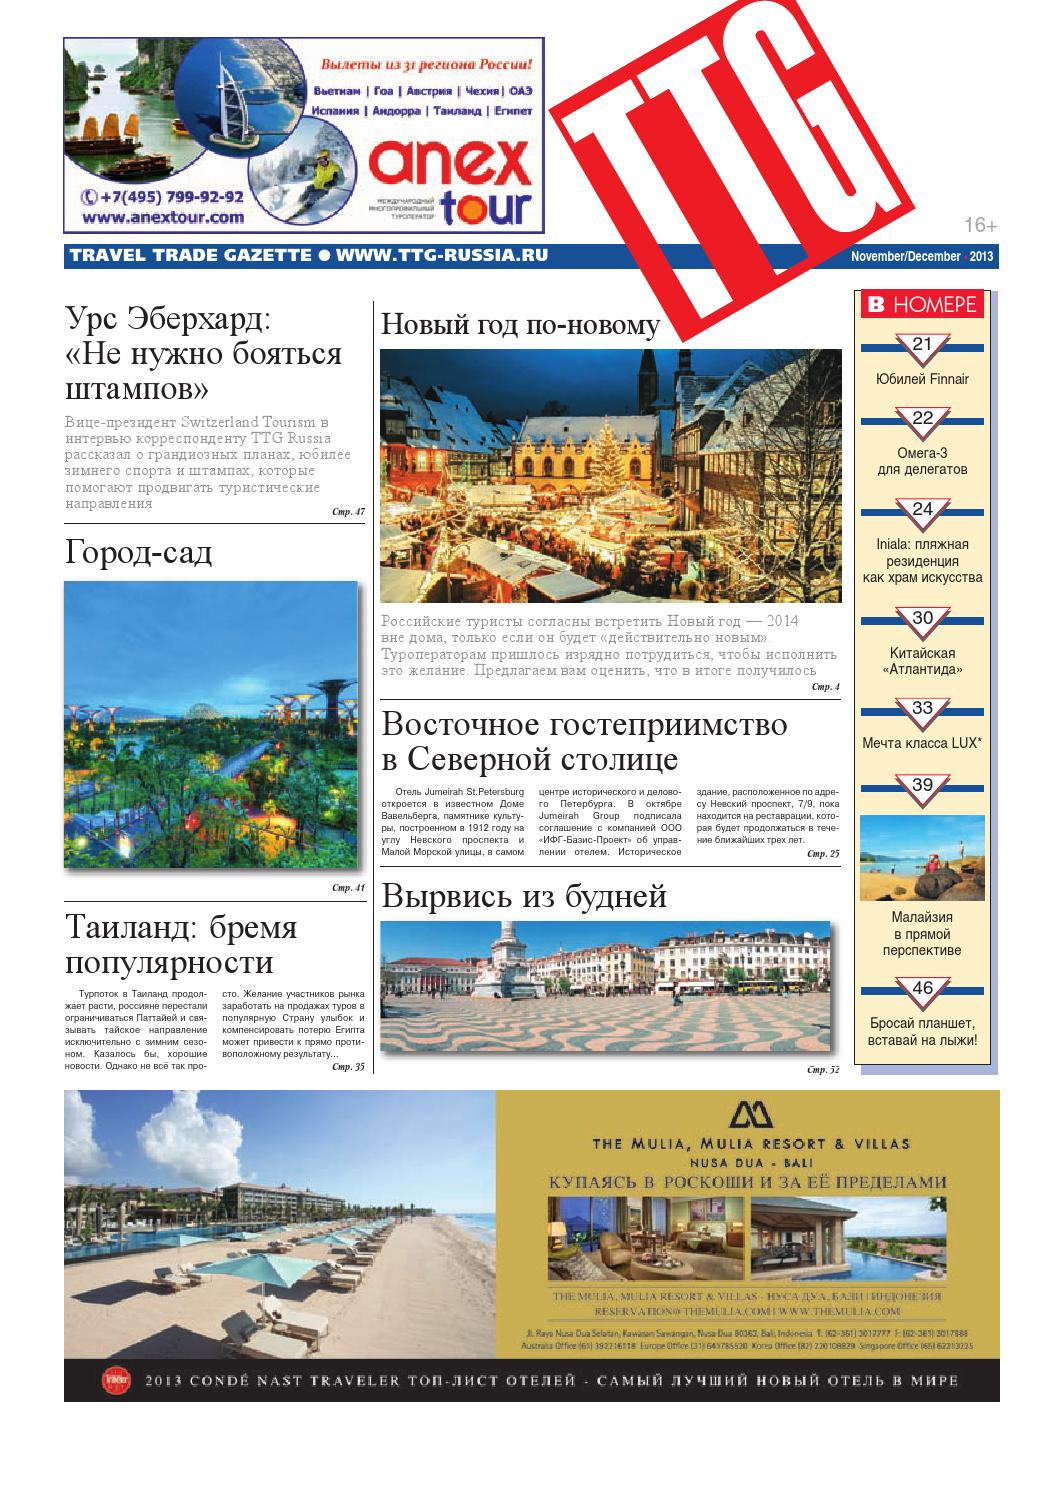 Ttg 11 12 2013 by TTG Russia - issuu 17174bbcd4c